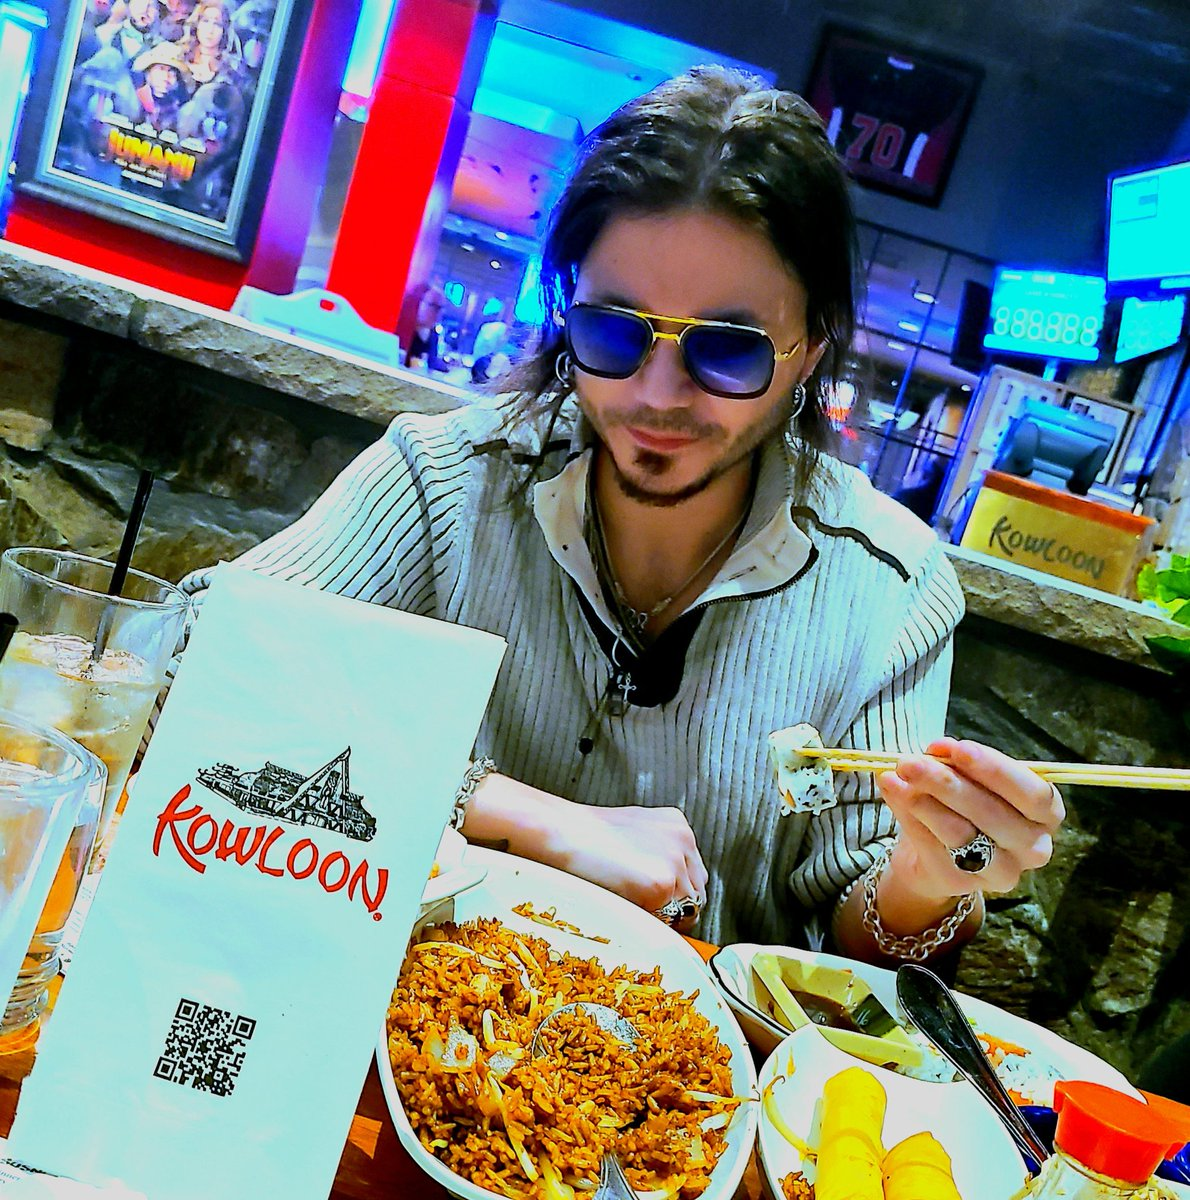 🎹looks like I'm really enjoying that boston maki! time to chow down @ one of my favorite spots!!!! Nothing better then some sushi🍤 and saugus wings. See you soon at the Kowloon🏯 🎹💨💨@KowloonSaugus #sushi #chinesefood #TheBest #livelife #stoned